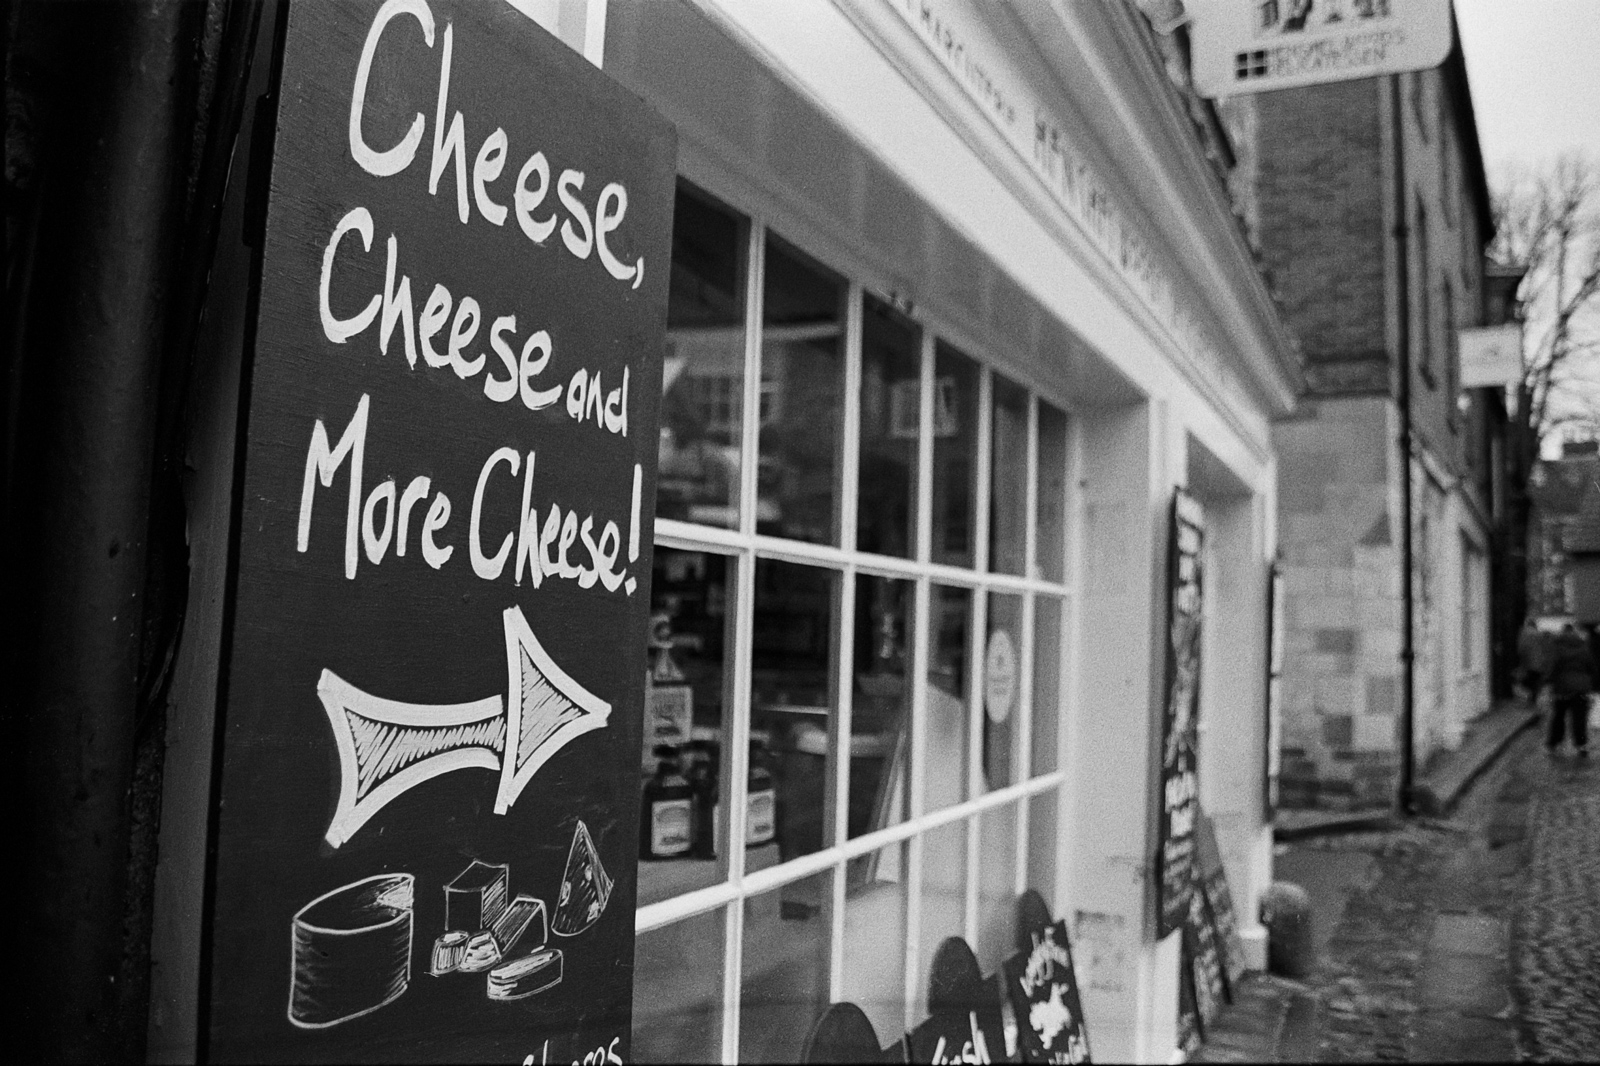 Cheese, Cheese and More Cheese